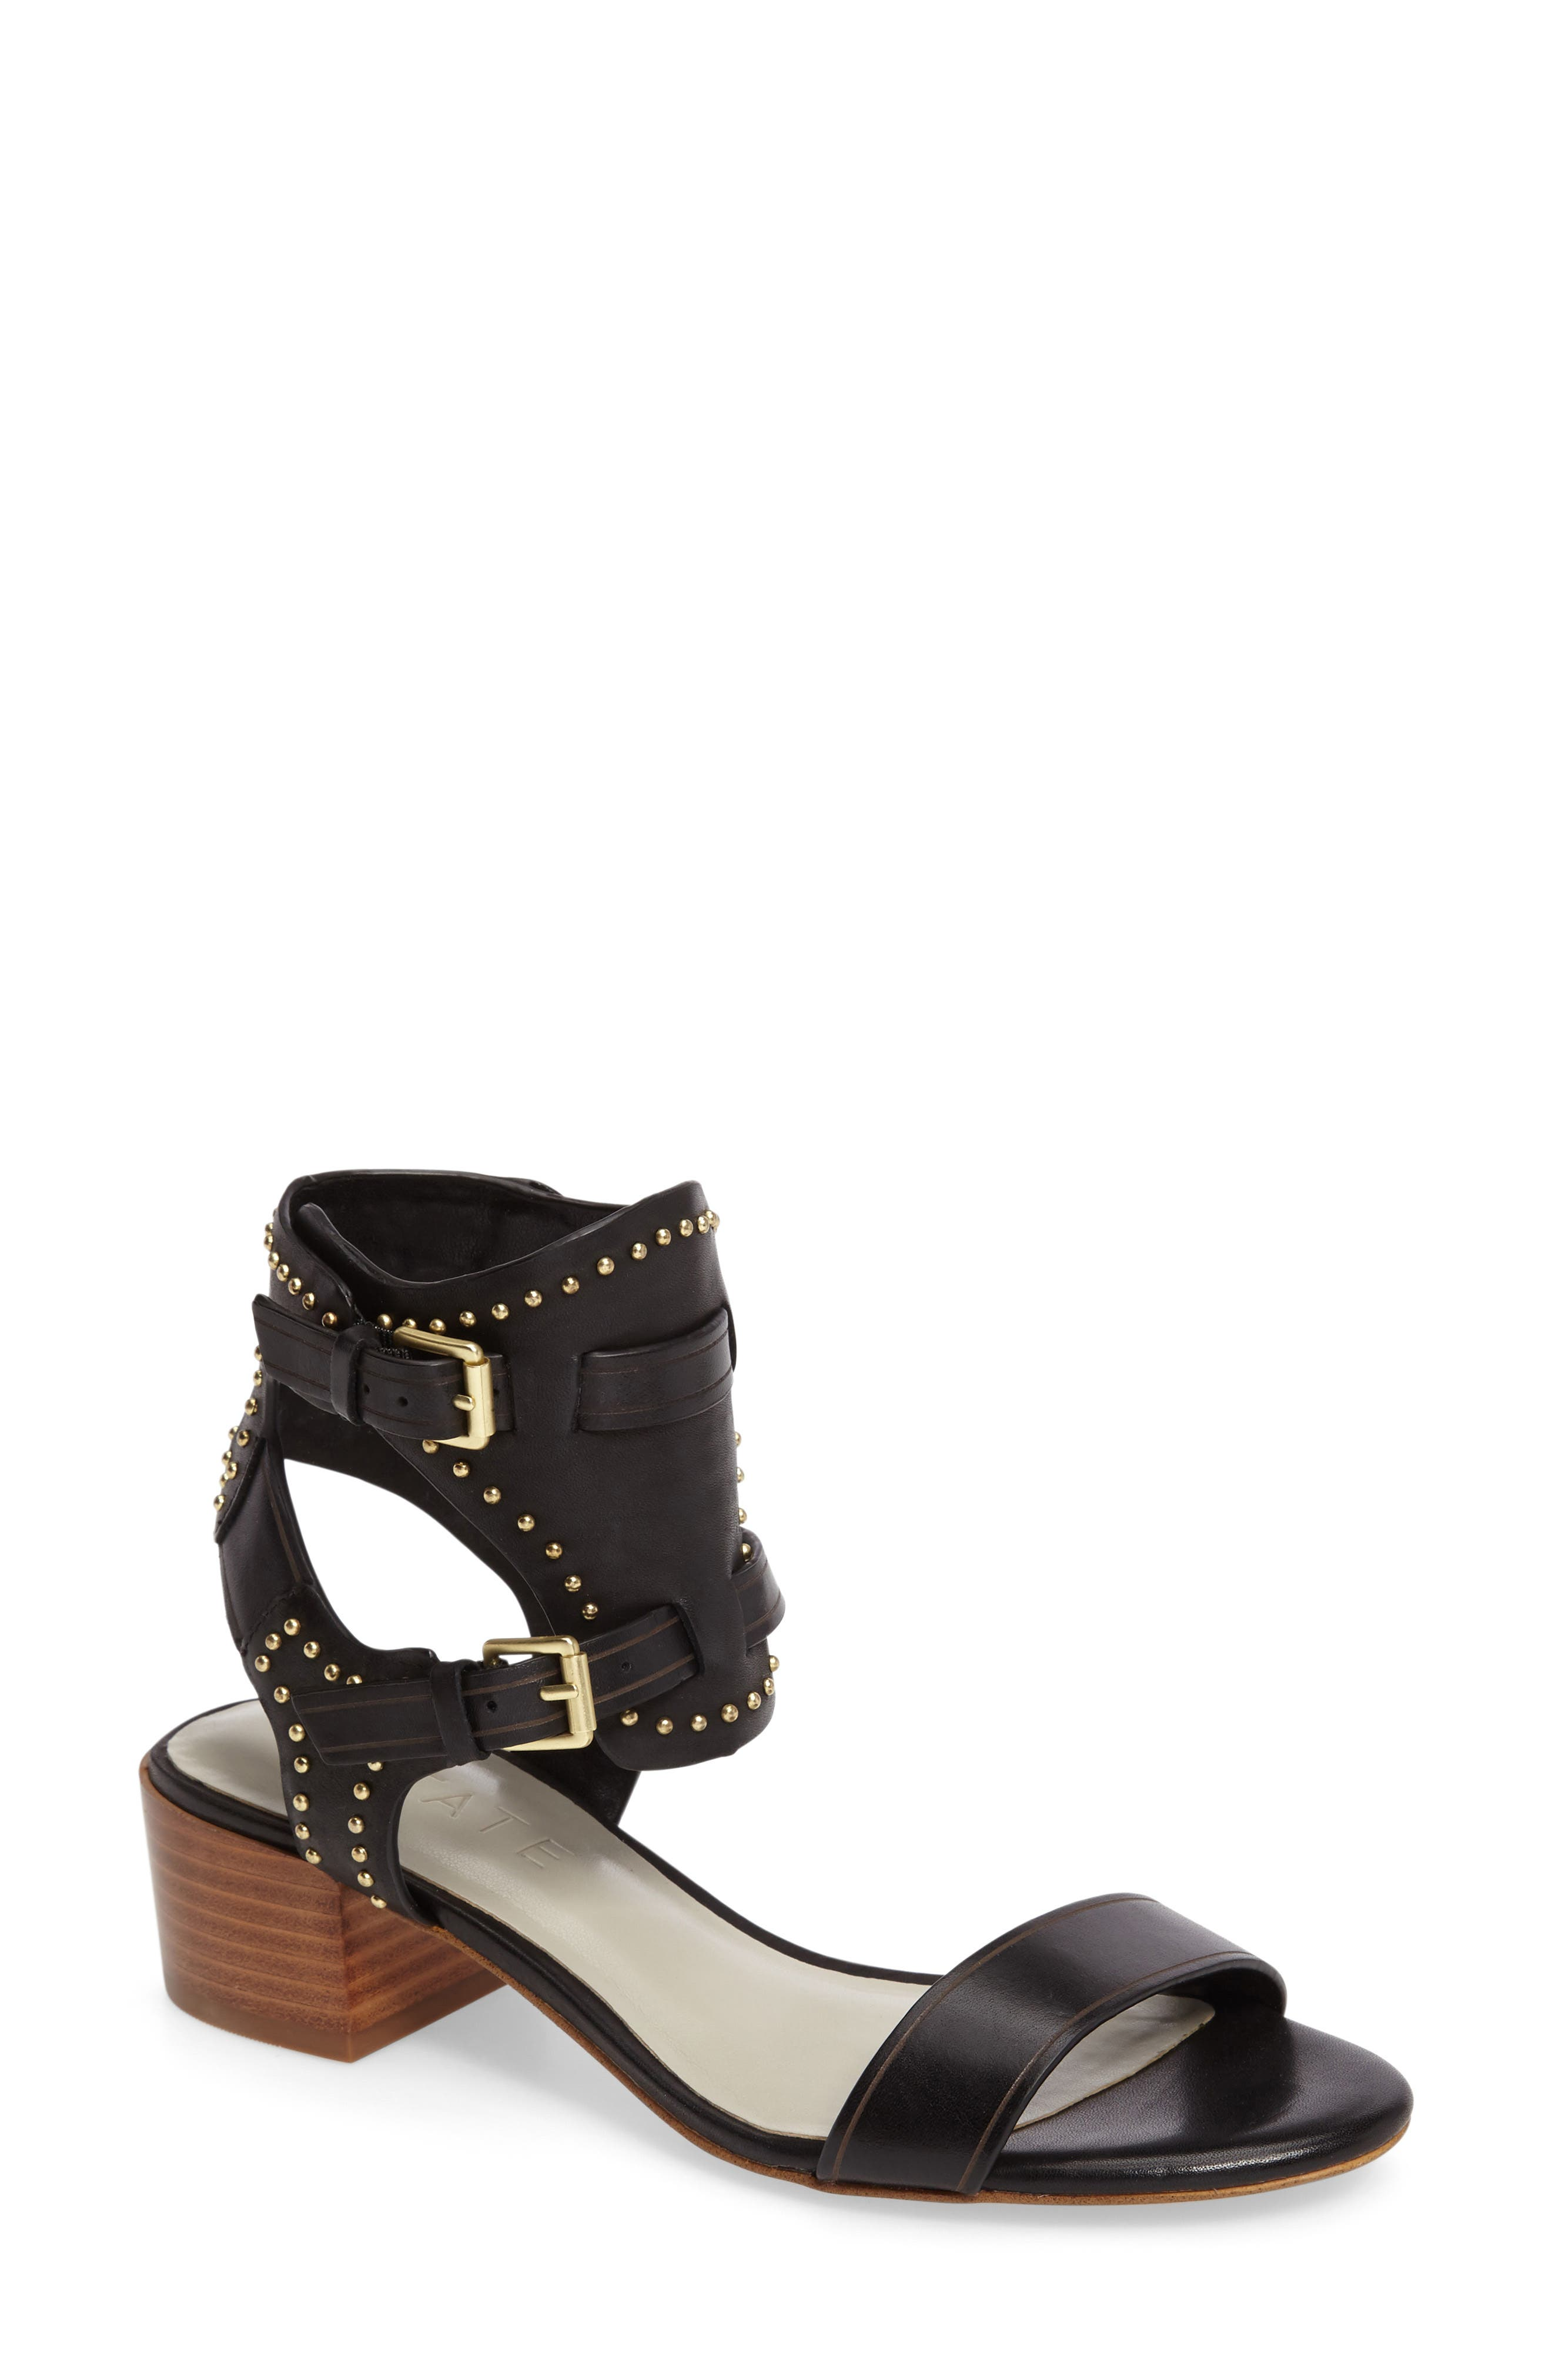 Rylen Sandal,                         Main,                         color, Black Leather